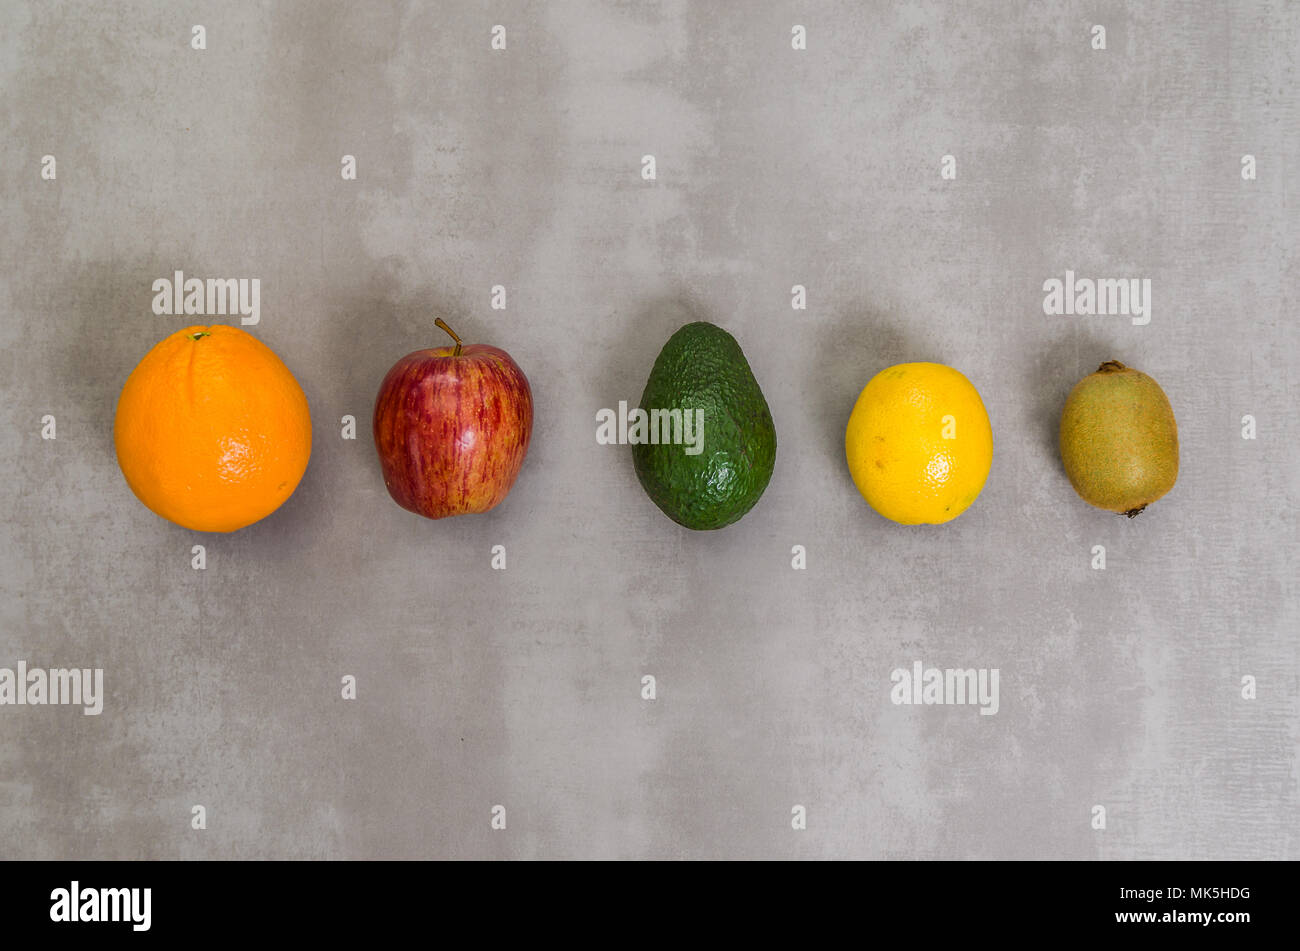 Great concept of healthy eating, various fruits on gray background, polished concrete. Orange, apple, kiwi, lemon. Stock Photo